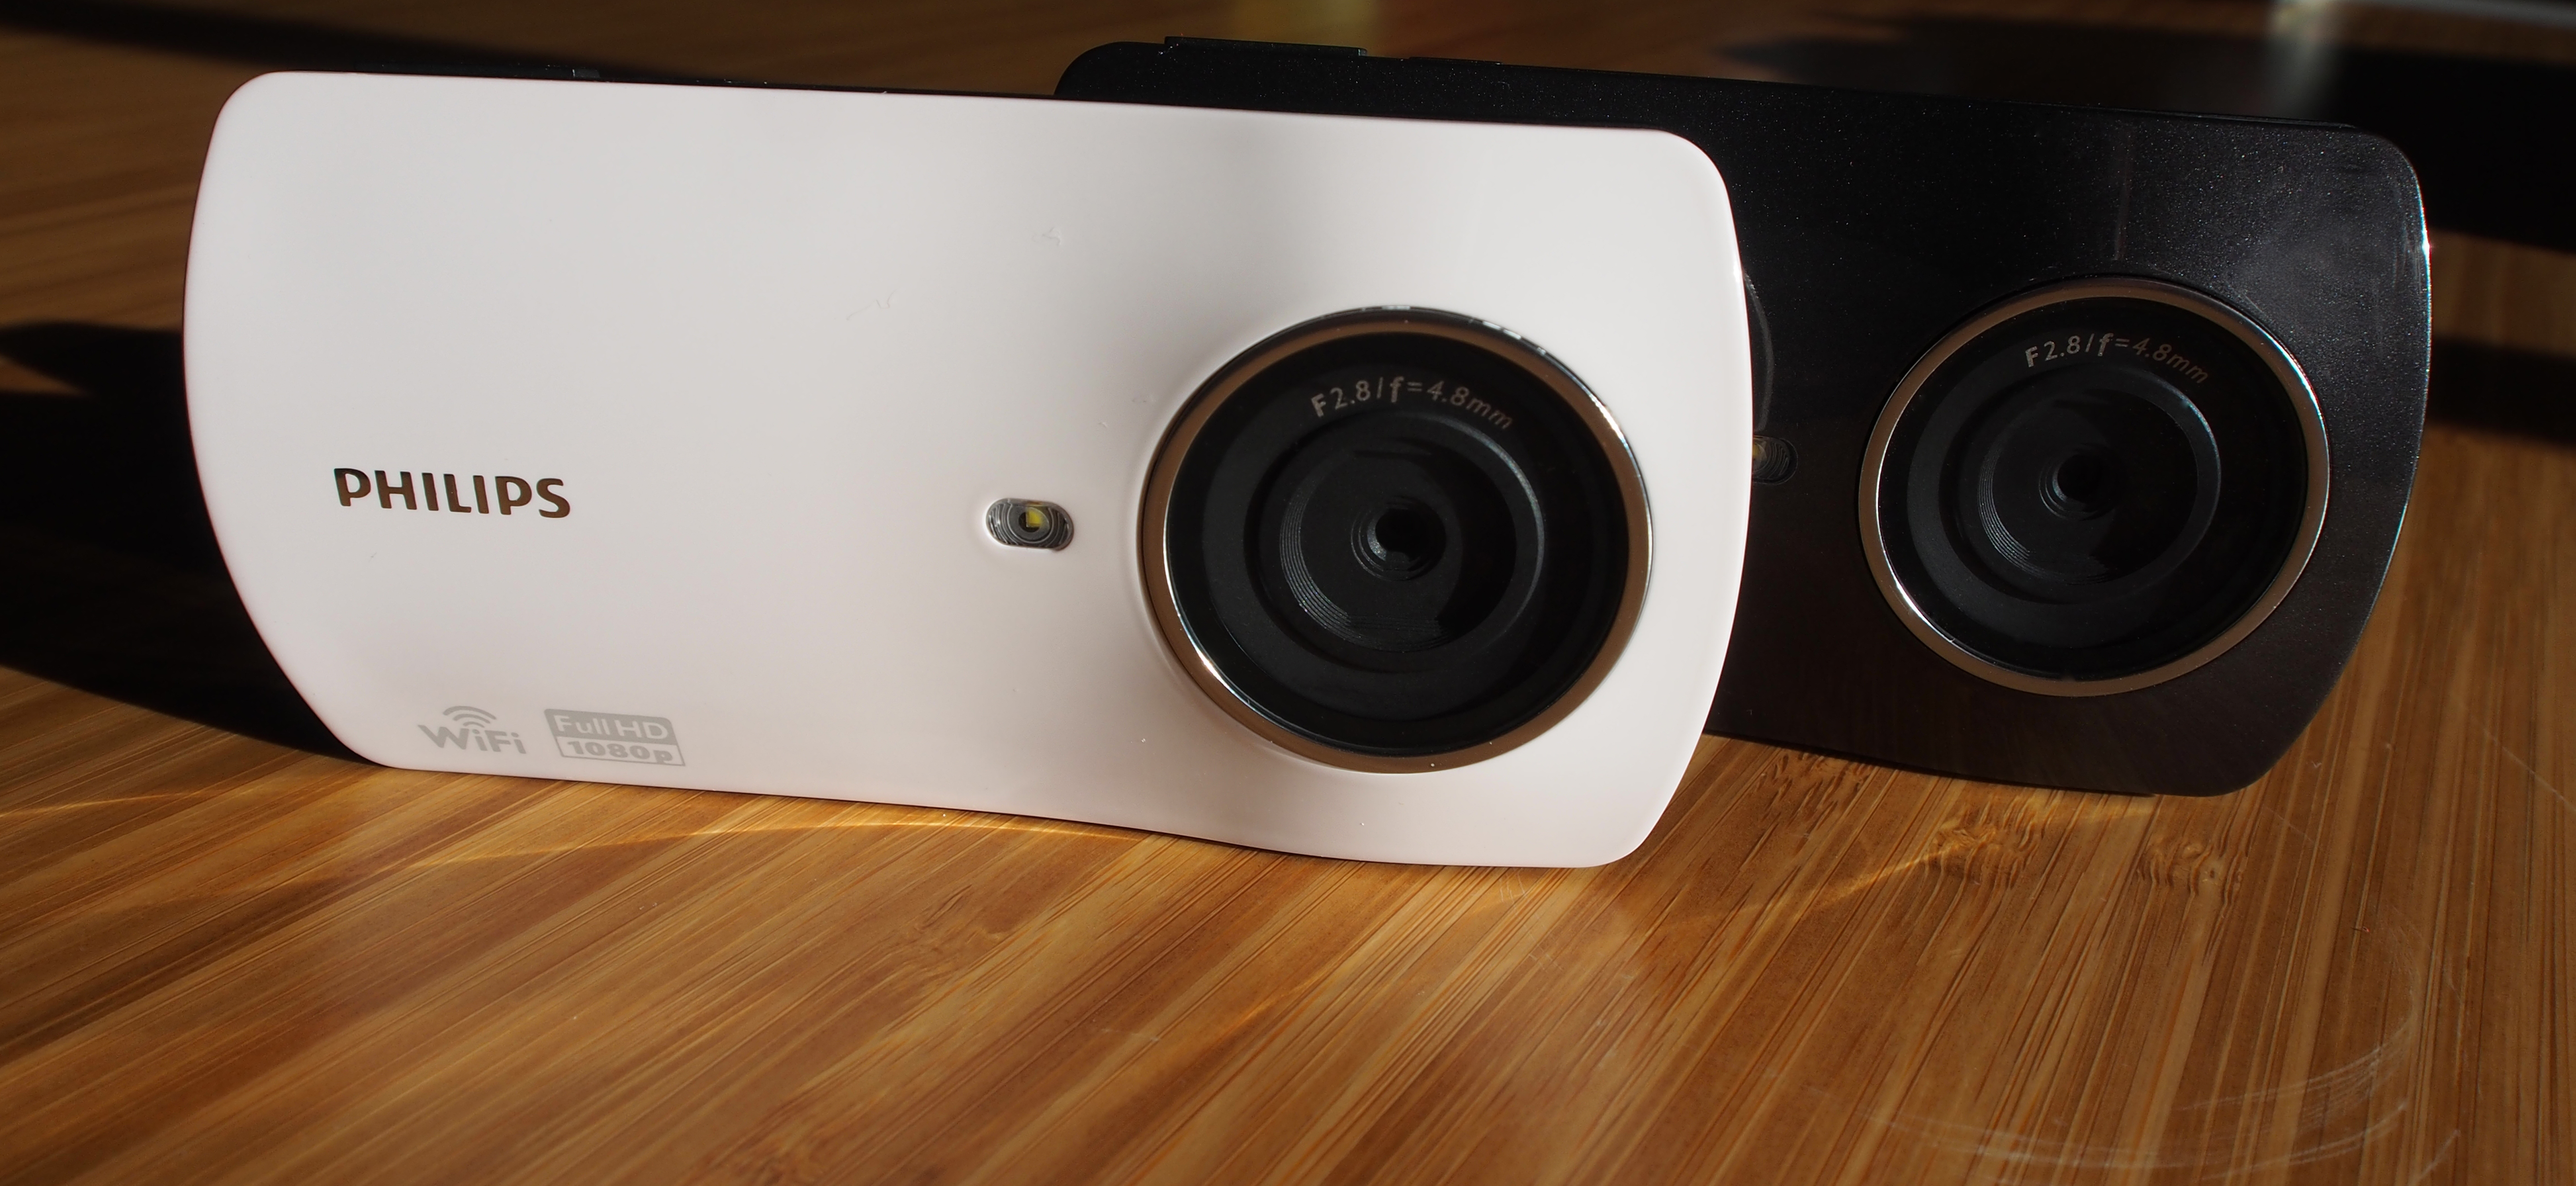 Philips eSee CAM200